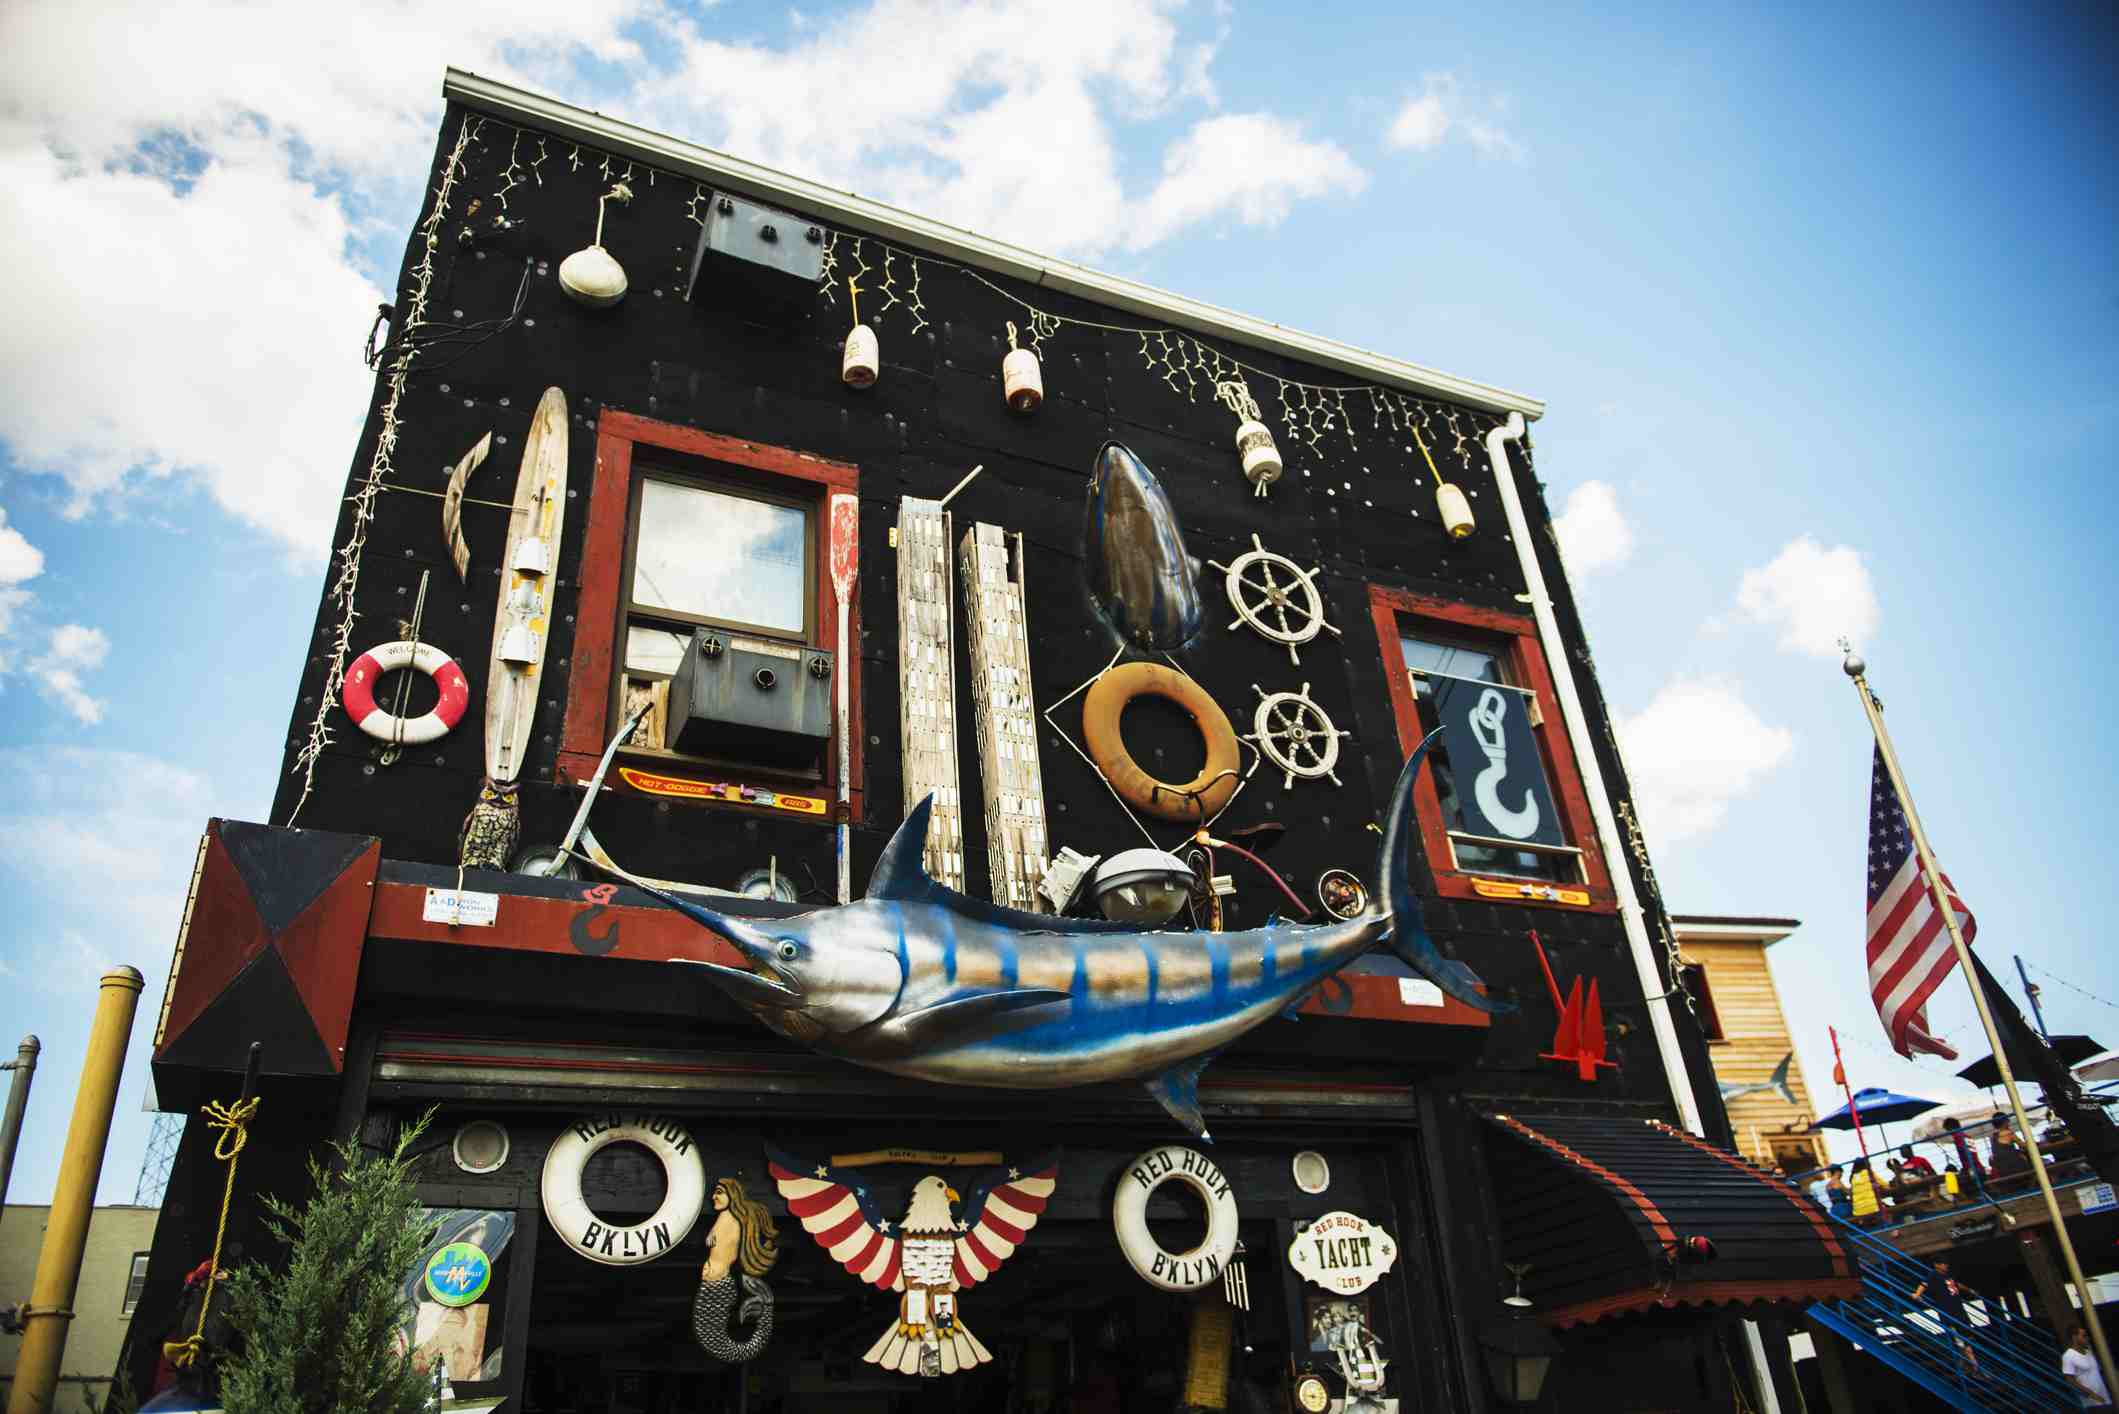 Small quirky shop in Red Hook, Brooklyn